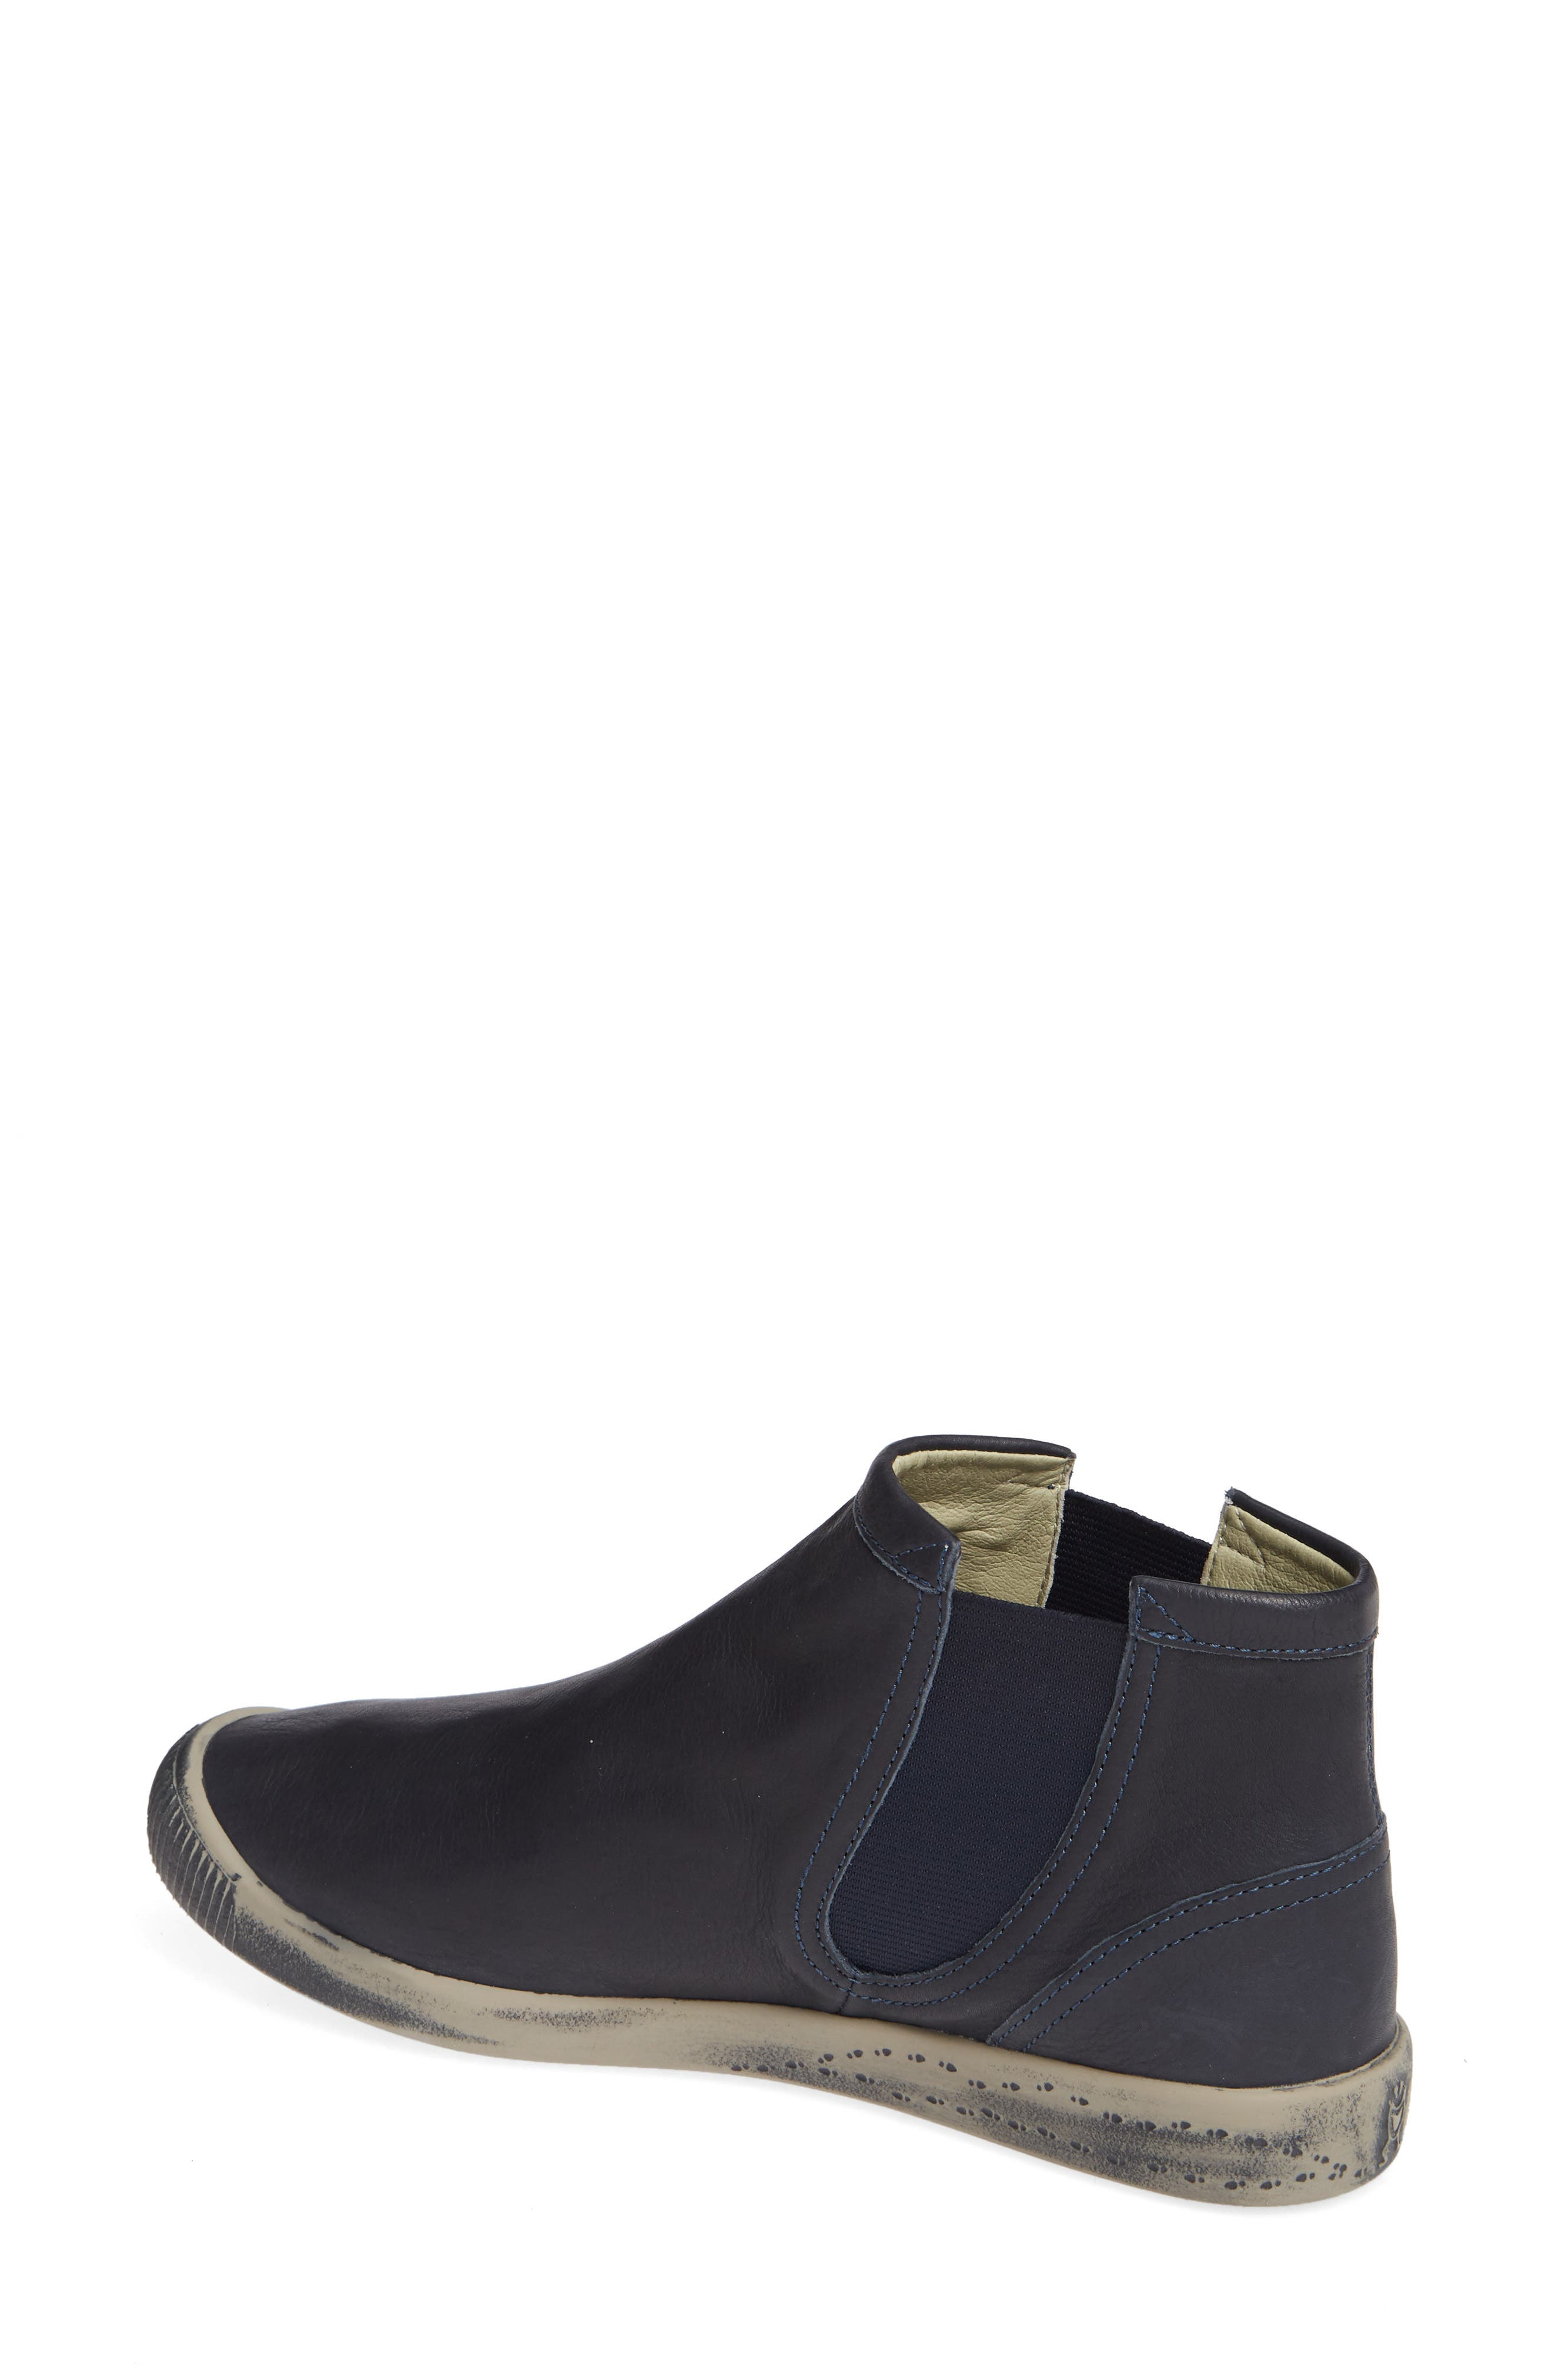 SOFTINOS BY FLY LONDON,                             Ici Sneaker,                             Alternate thumbnail 2, color,                             NAVY SMOOTH LEATHER